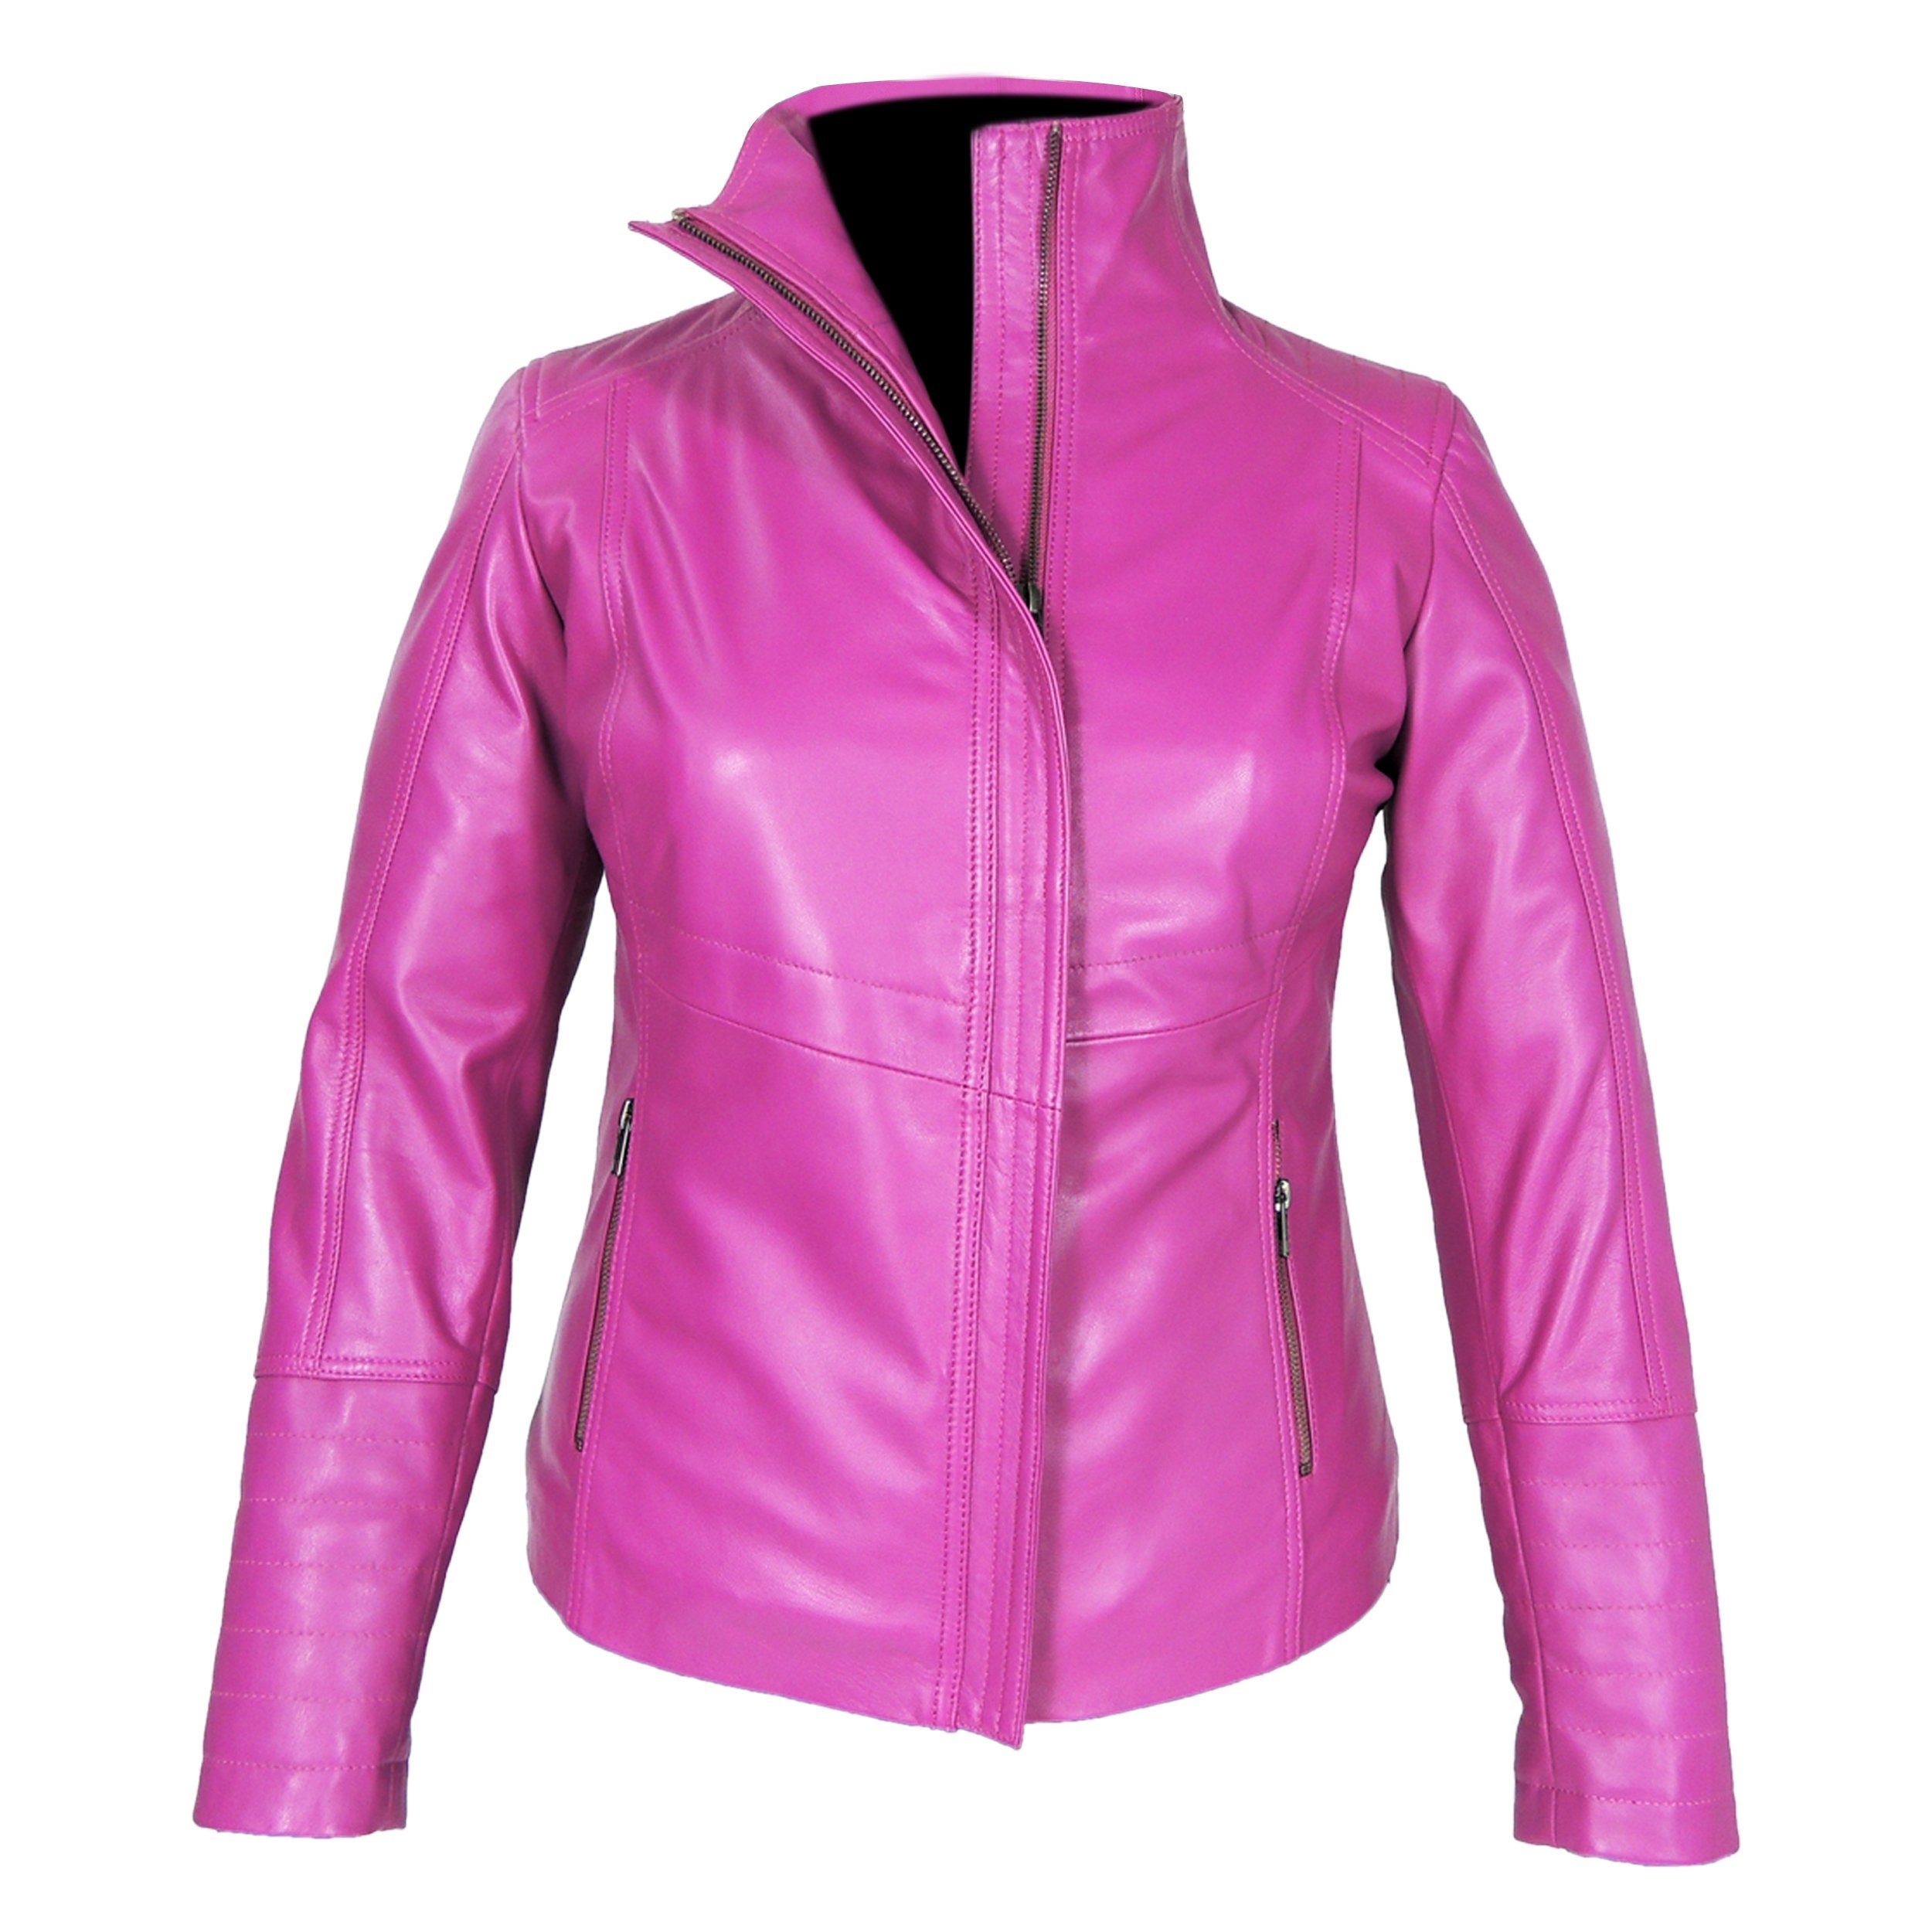 Arra Womens Leather Jacket, Pink - Fadcloset